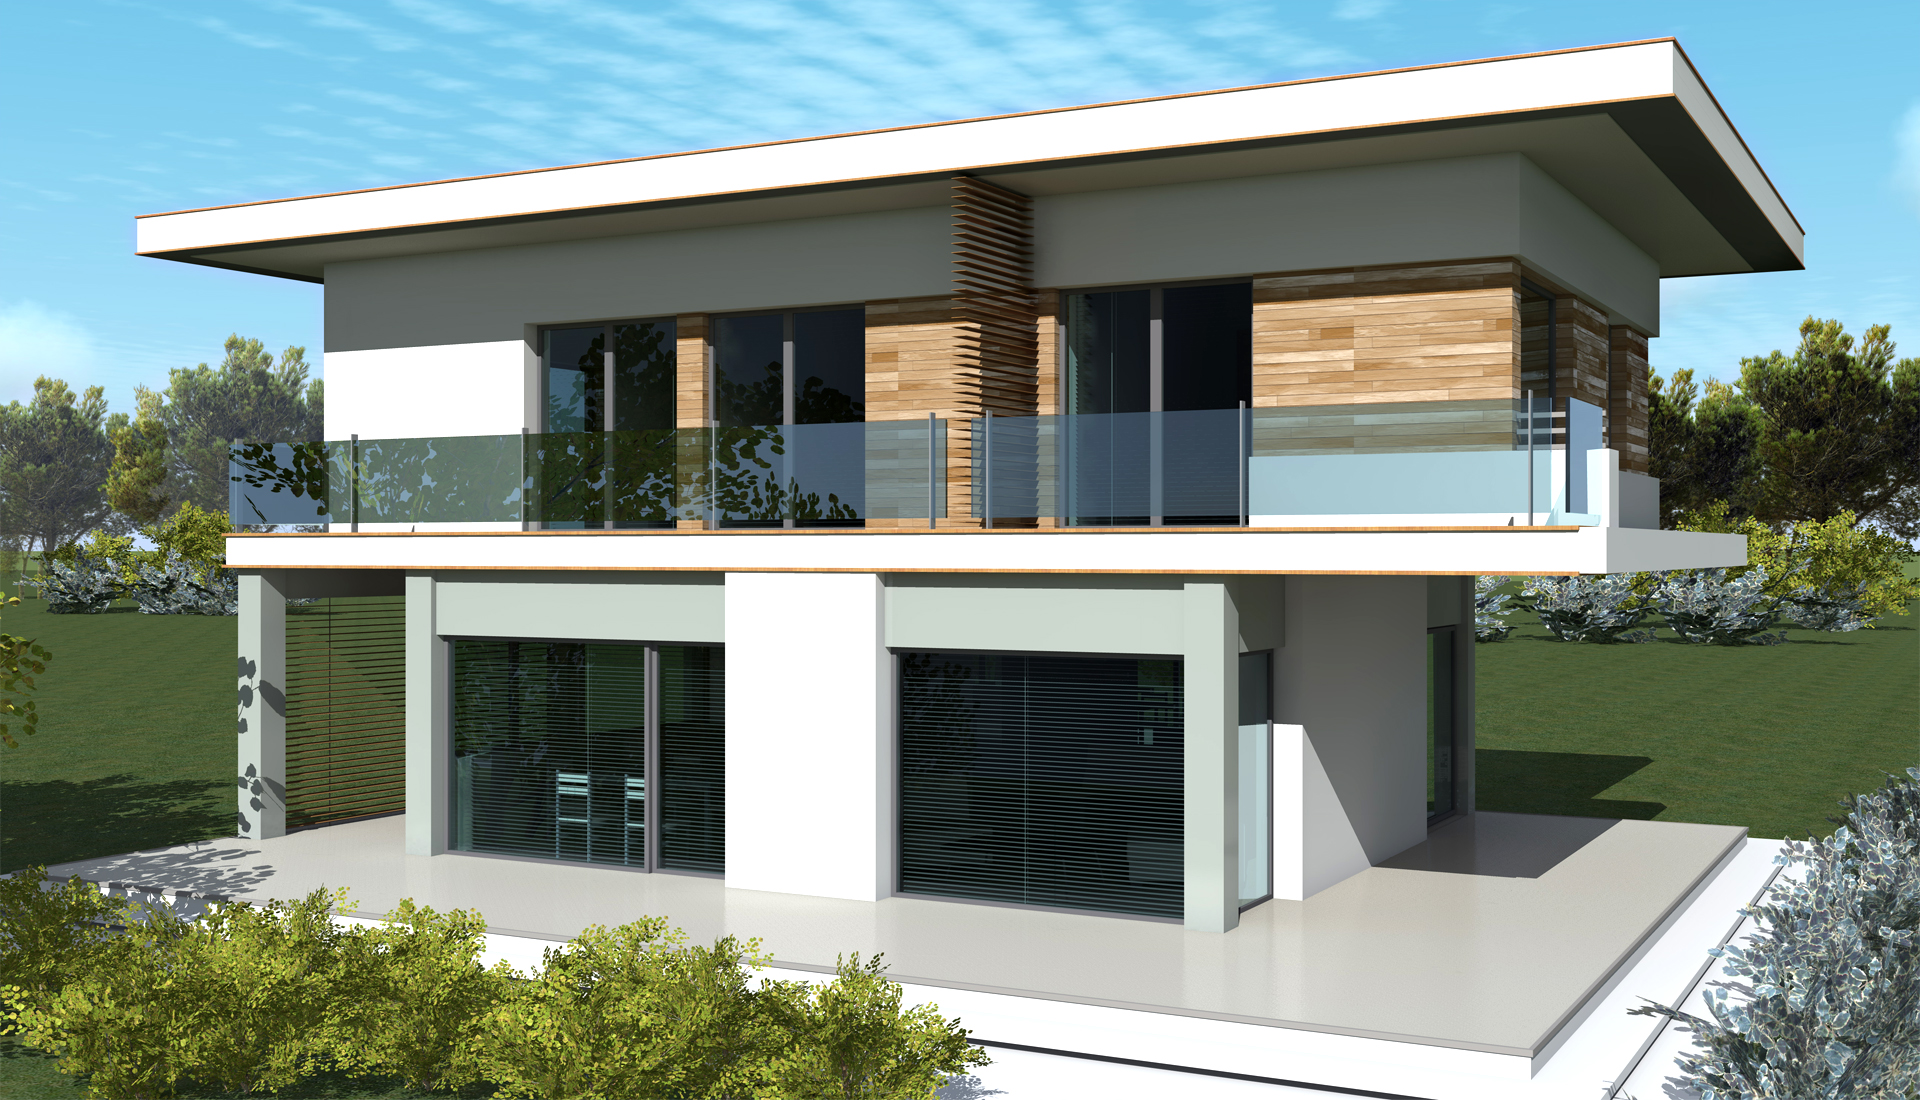 Plan maison contemporaine is 10 150m2 for Maison moderne 69